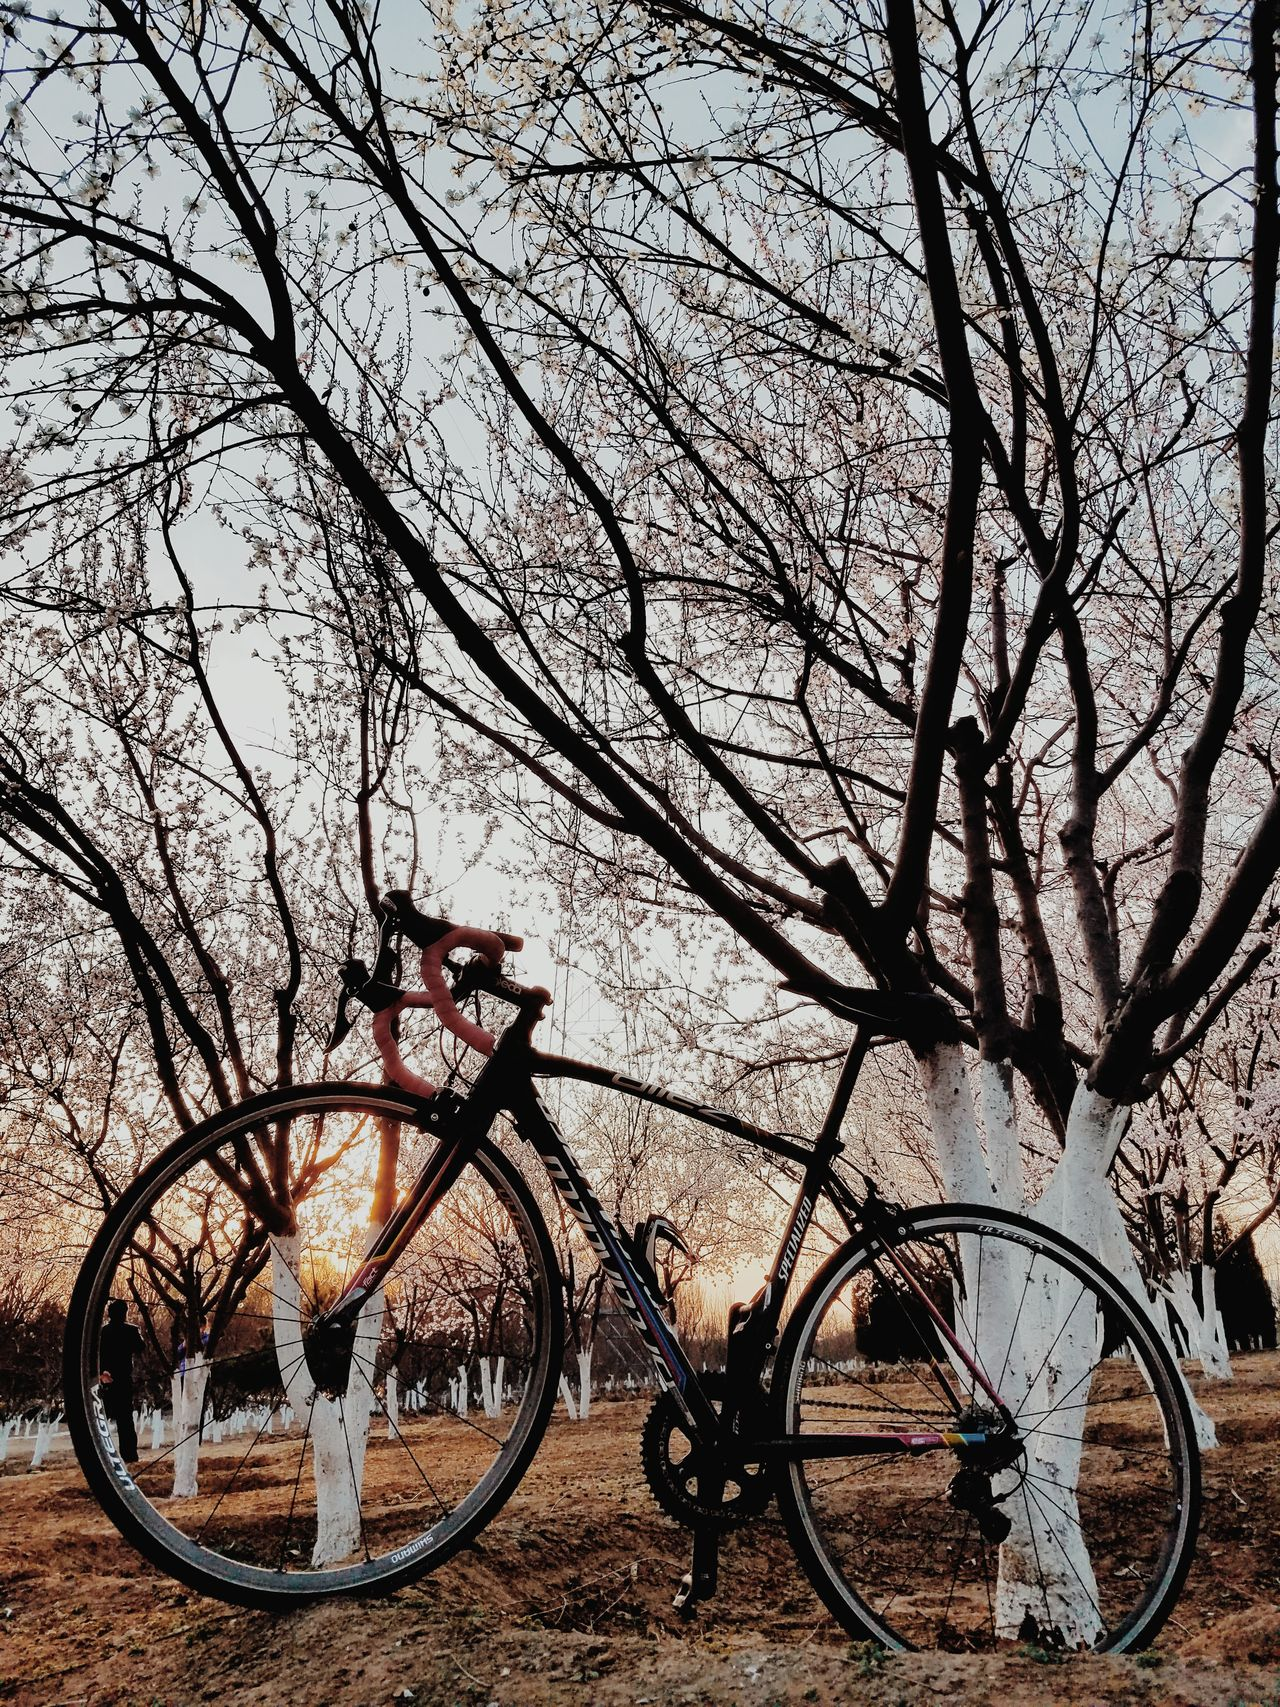 Bicycle Transportation Land Vehicle Sky Outdoors No People Nature